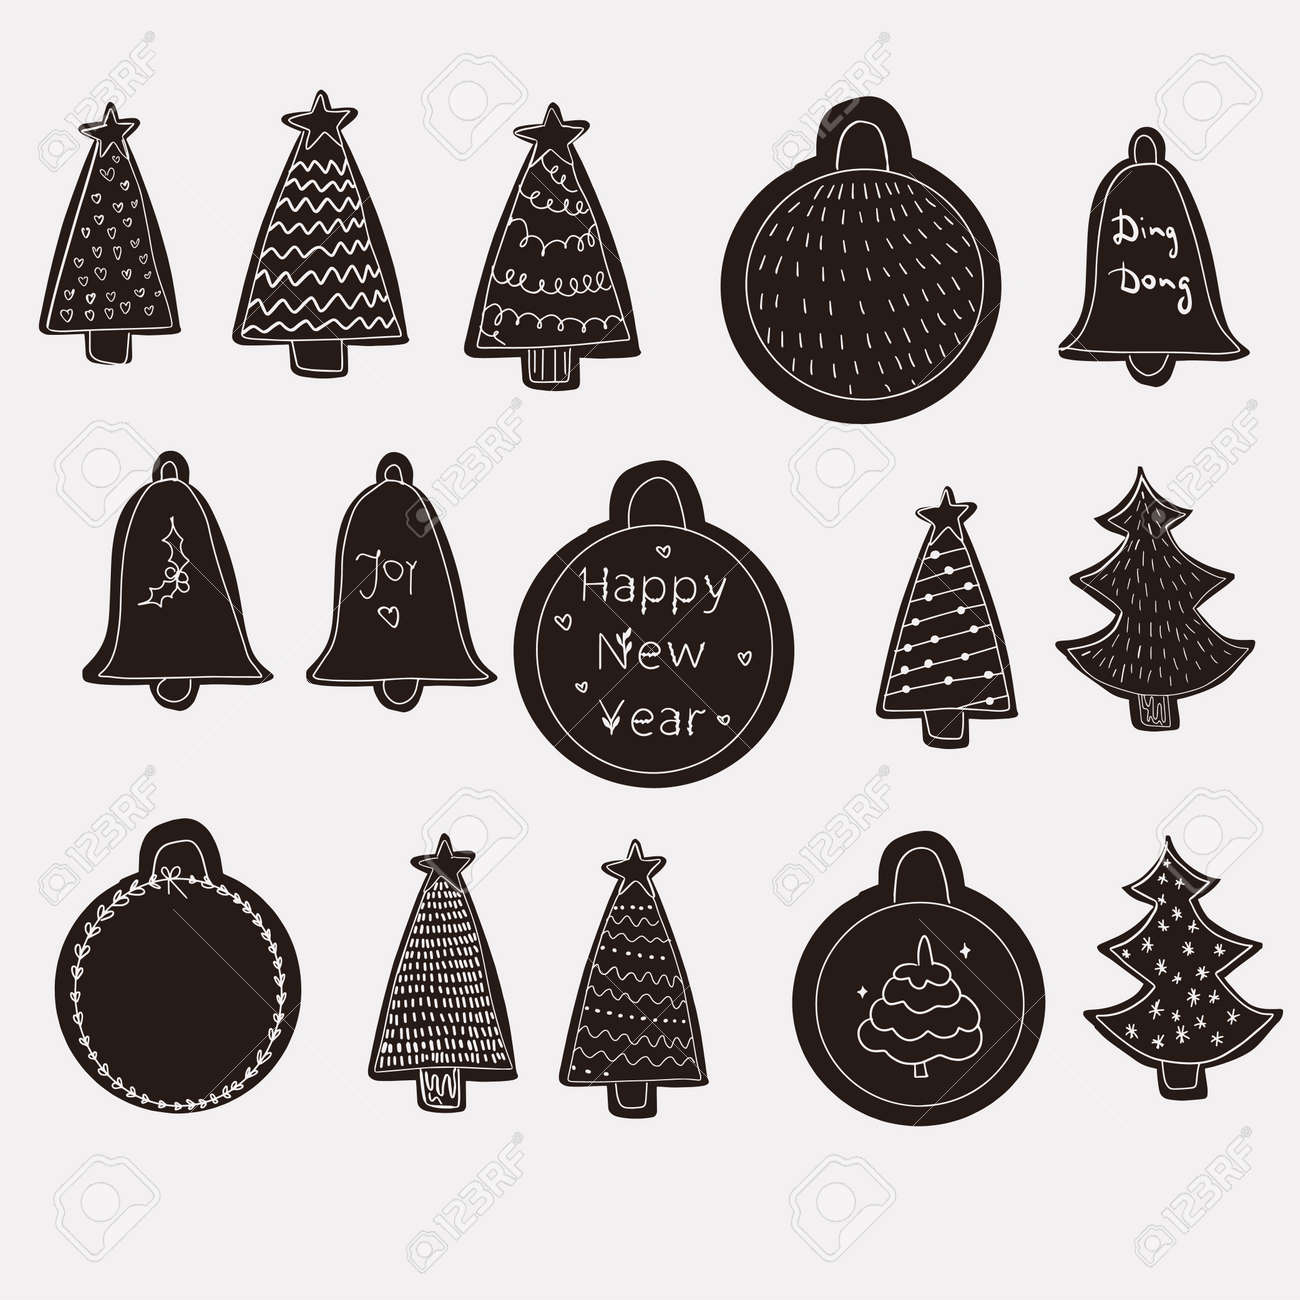 Merry Christmas and Happy New Year greetings card - 158833604